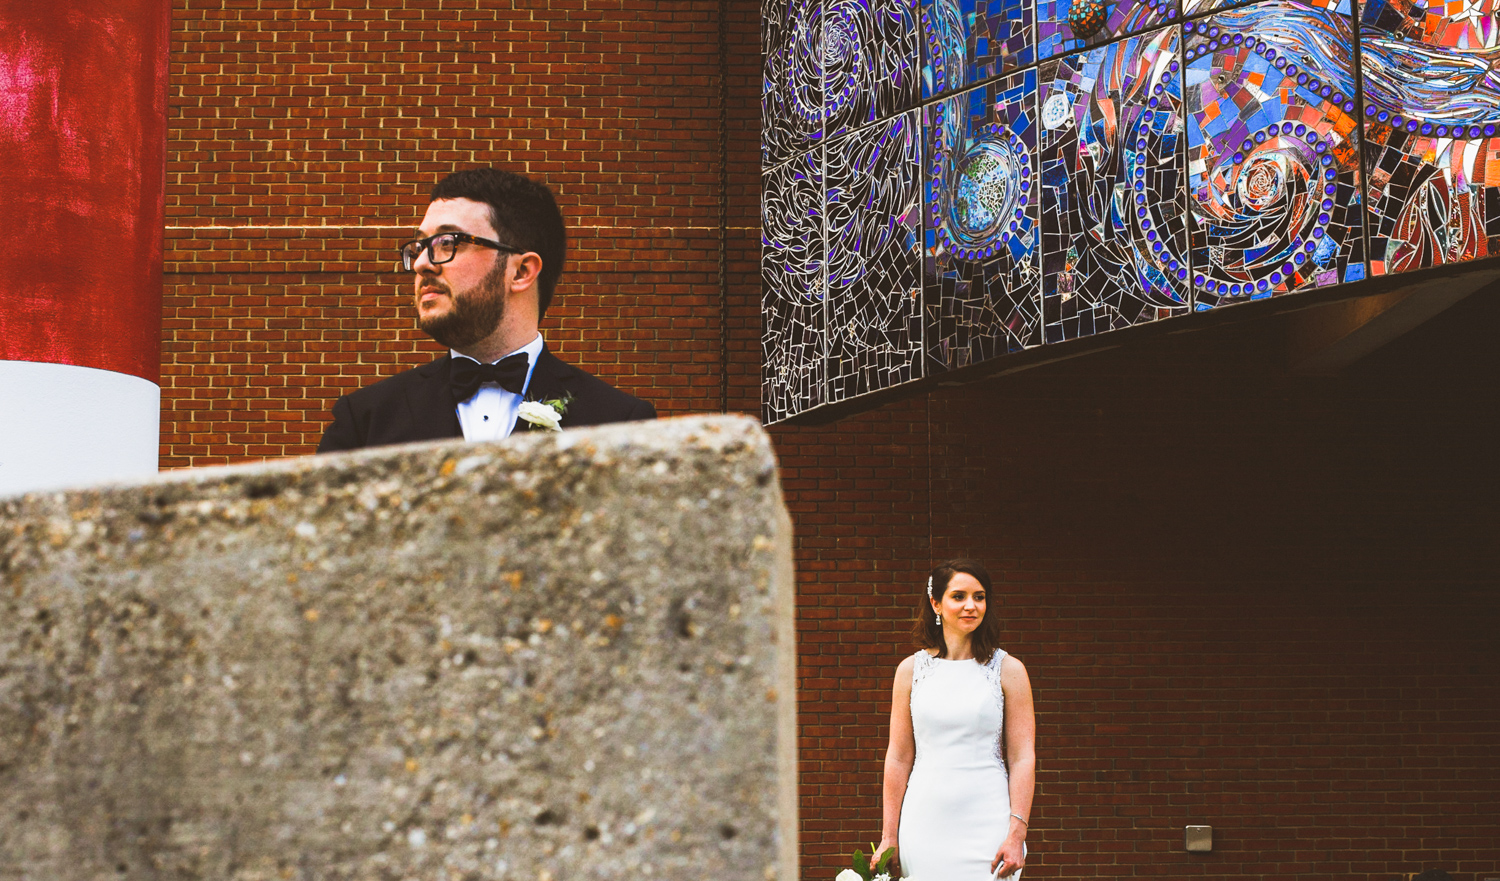 032 - beautiful creative wedding portrait at the american visionary arts museum in baltimore maryland.jpg